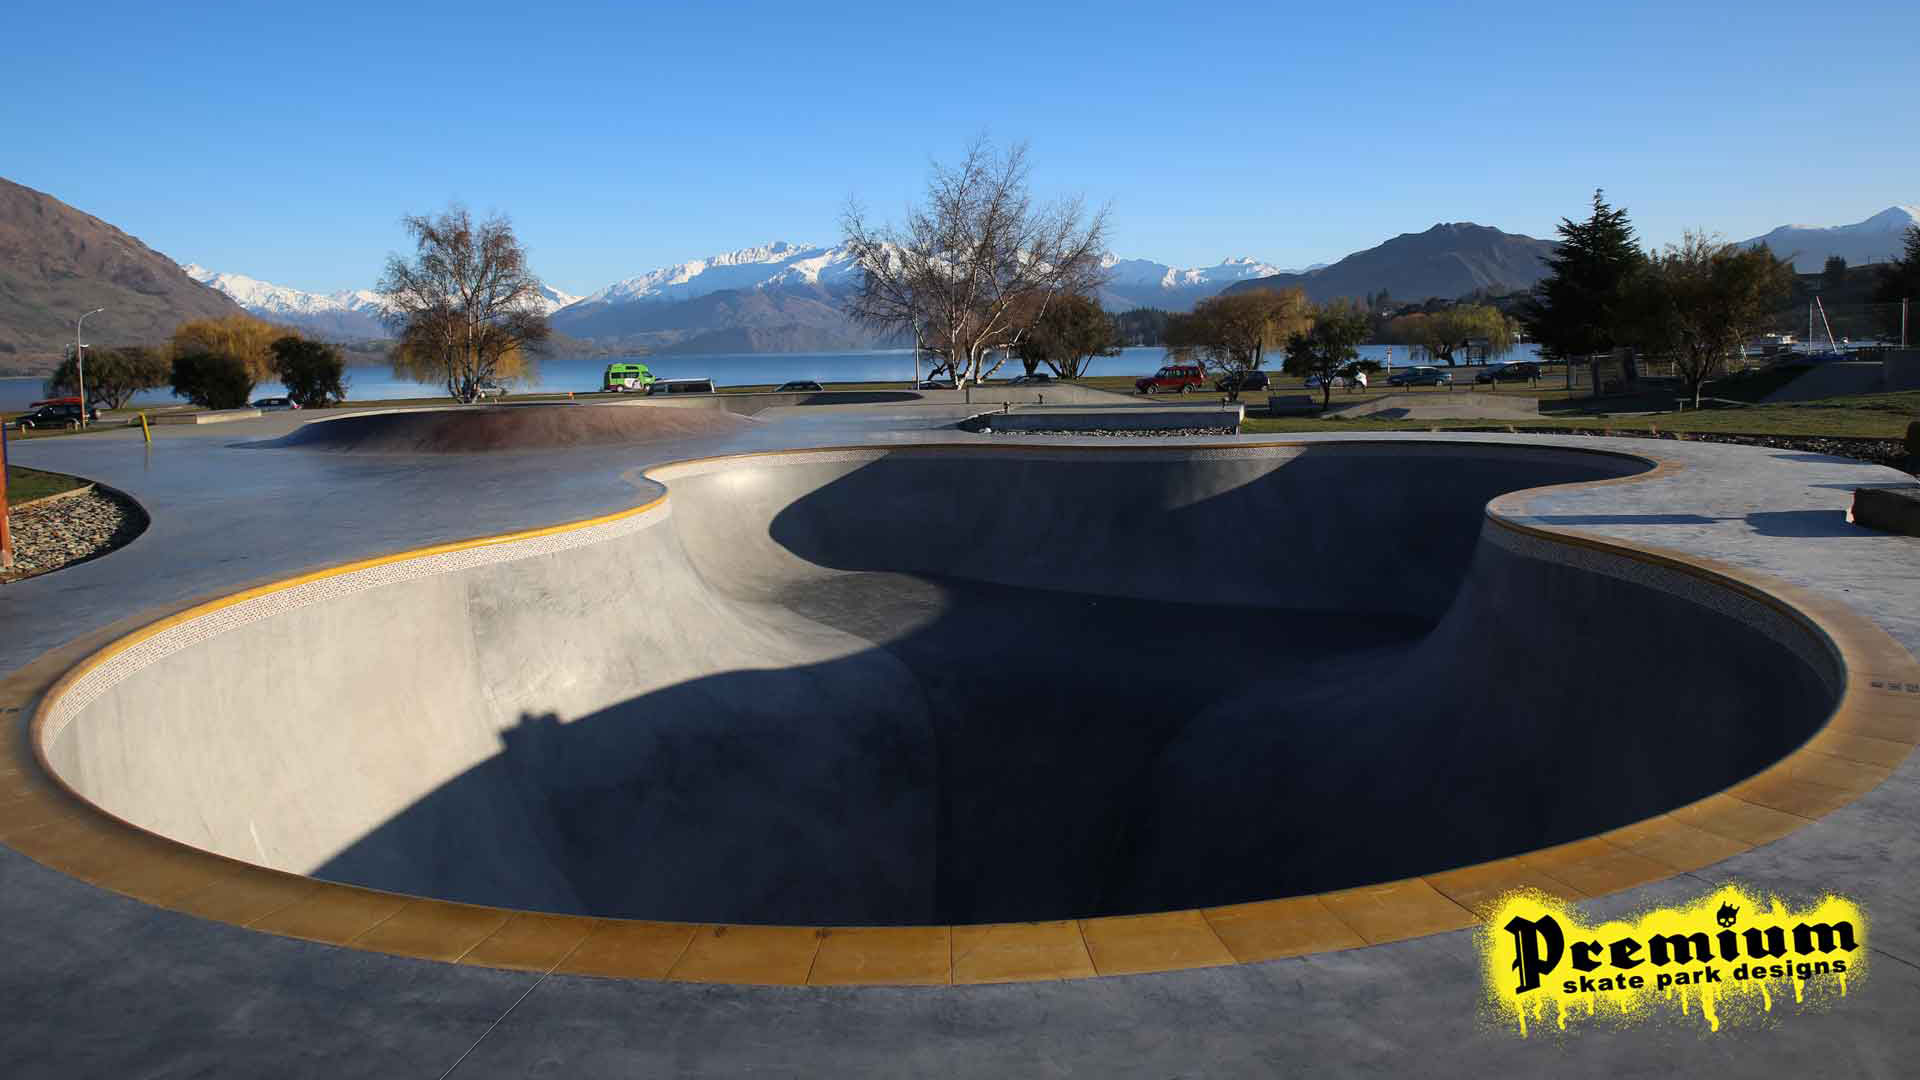 Coping - Wanaka Bowl - Premium Skatepark Designs